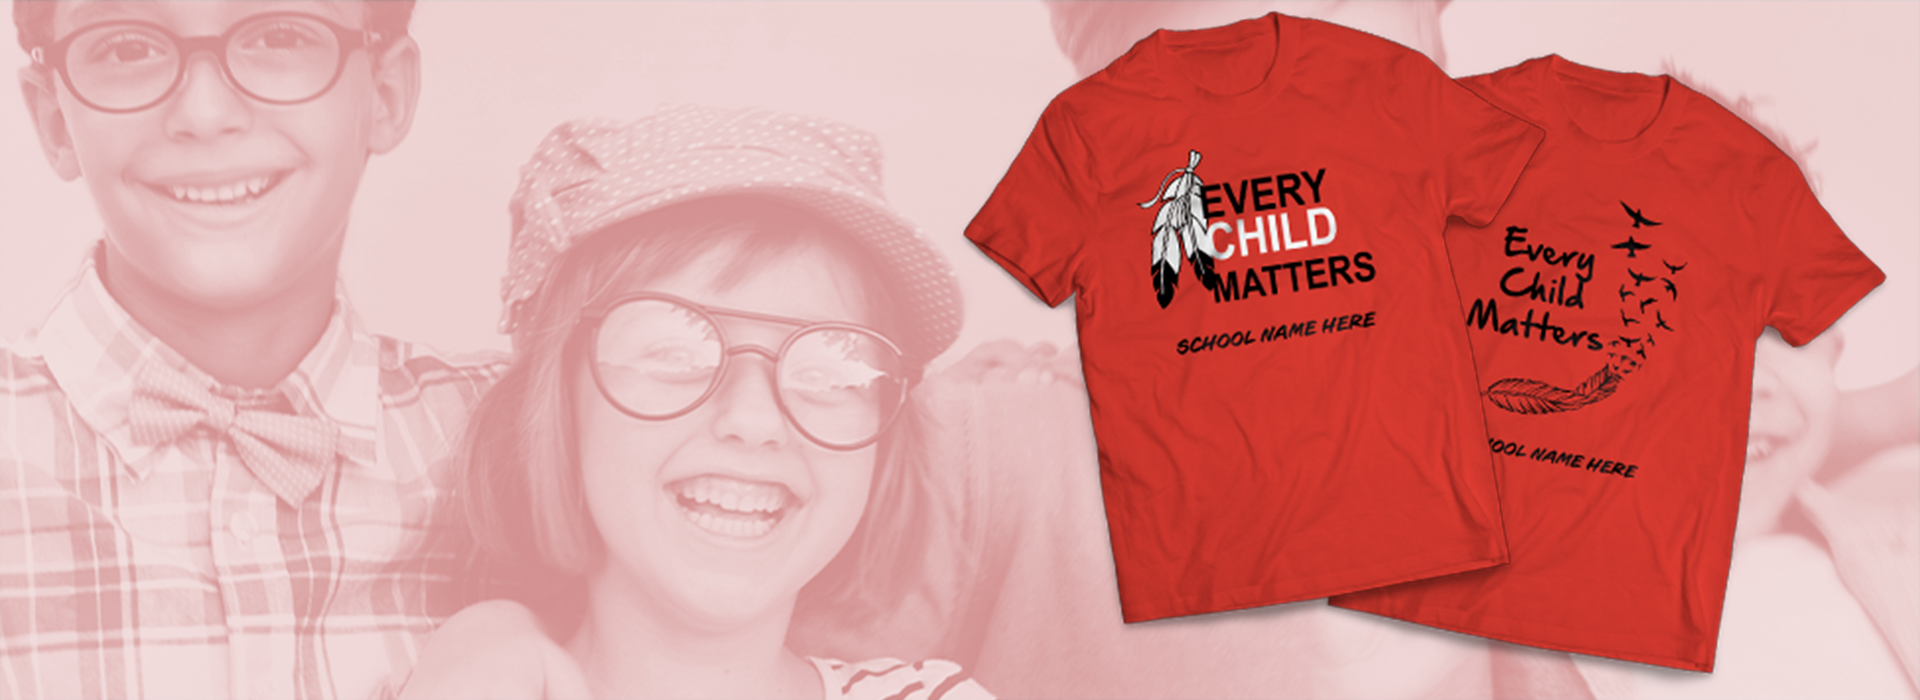 ORANGE SHIRTS DAY